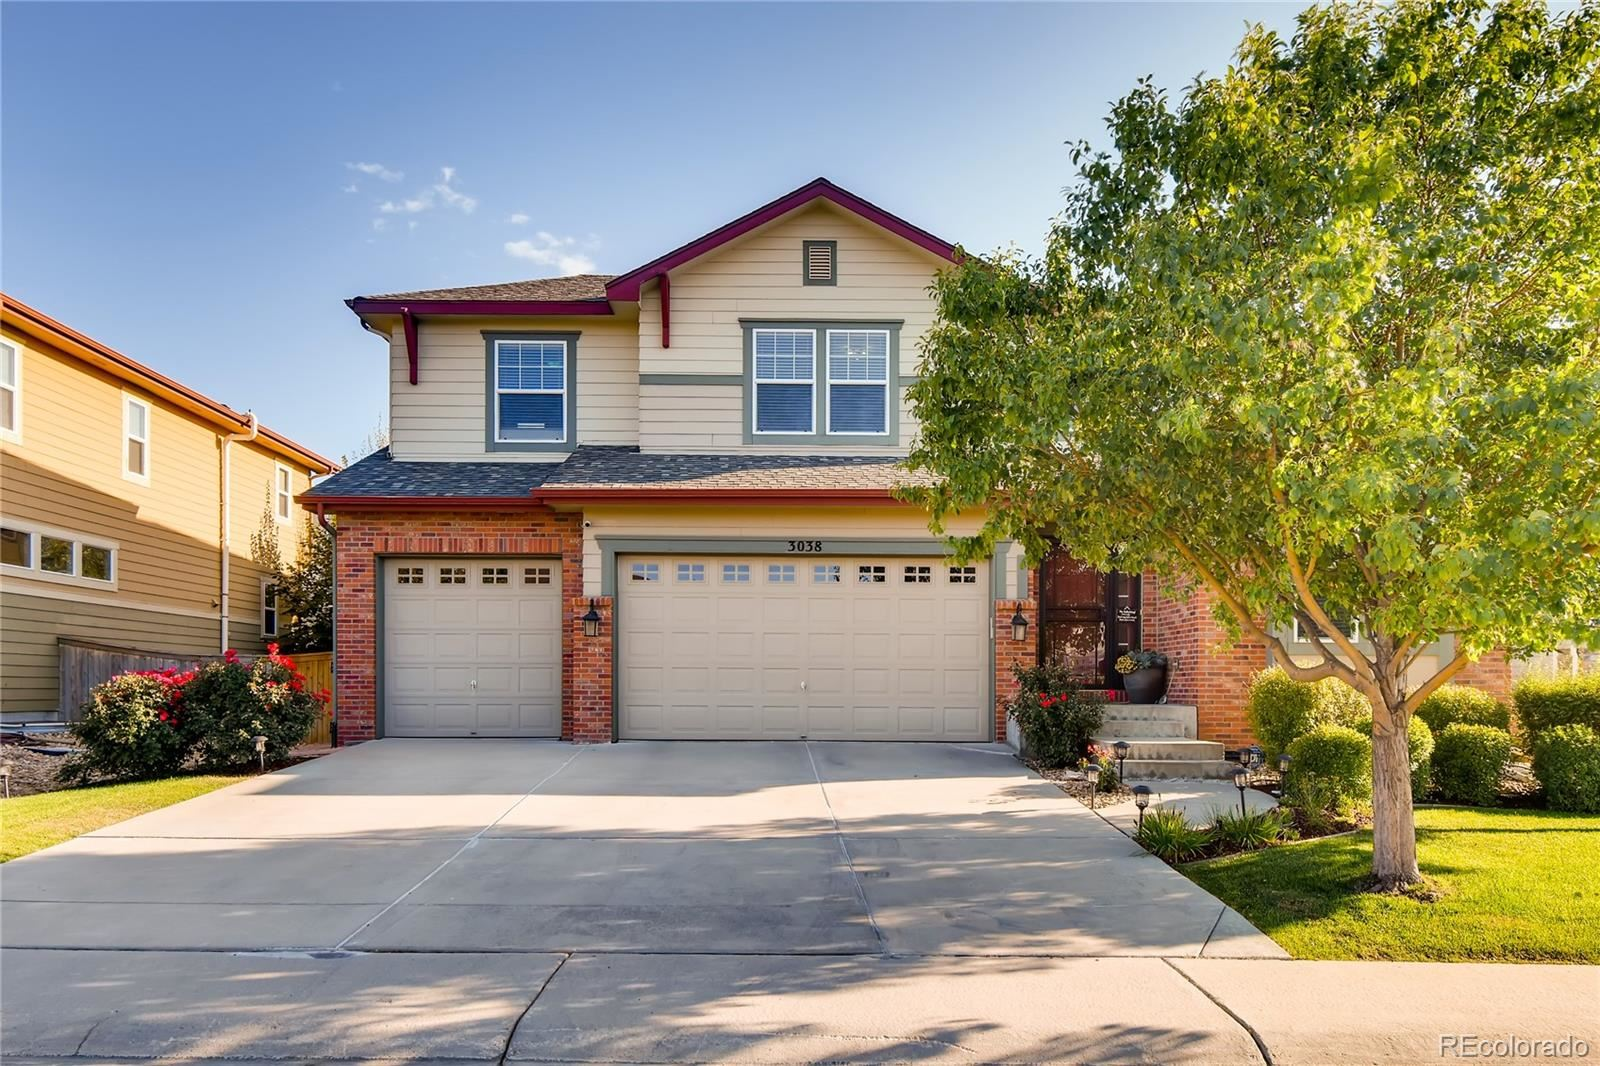 3038 E 143rd Avenue, Thornton, CO 80602 - #: 6896543